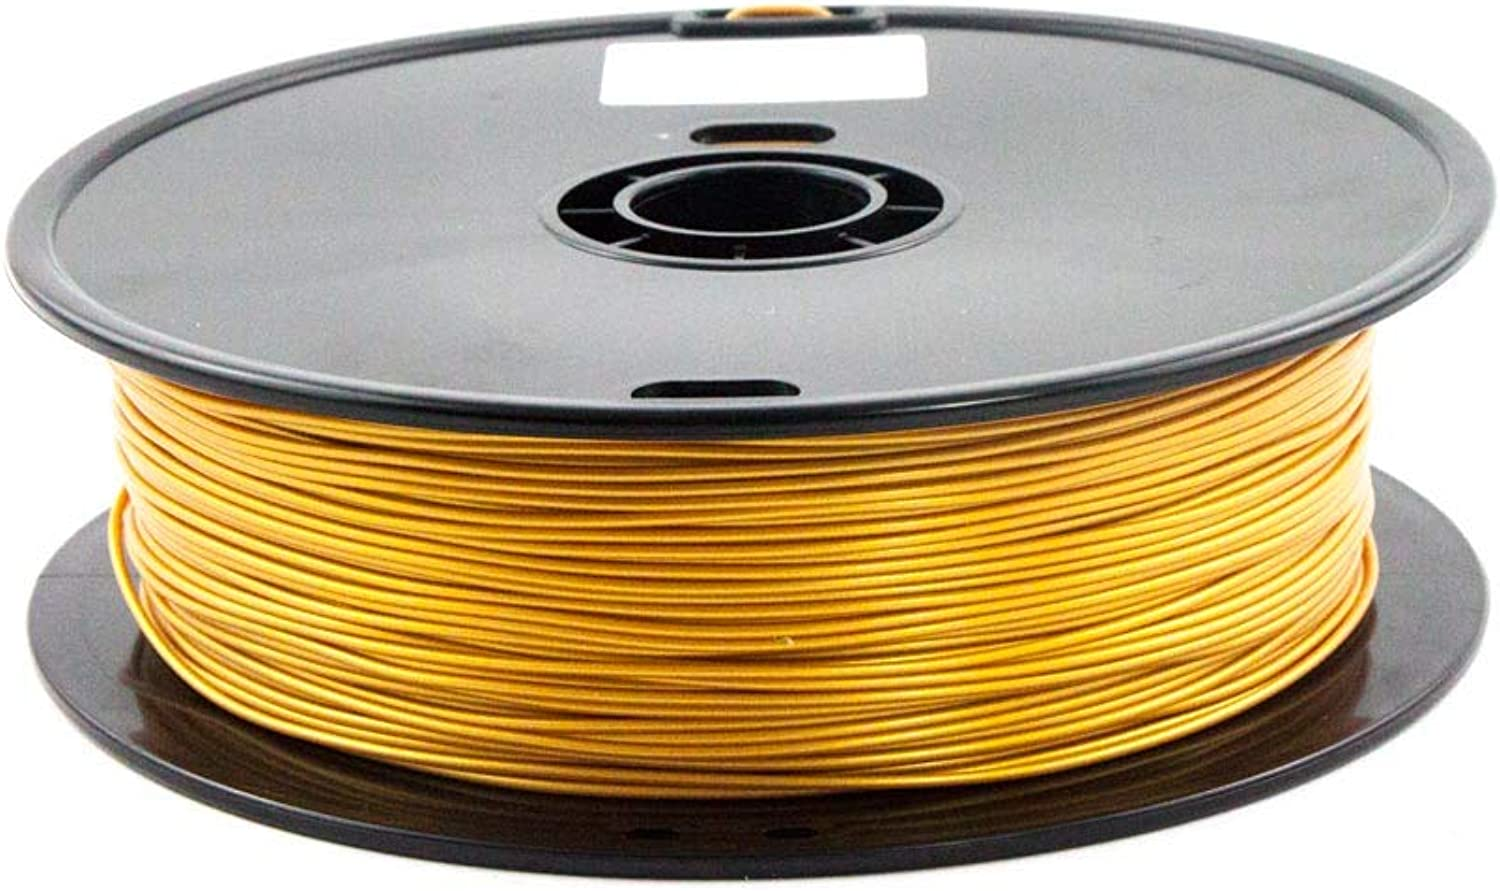 Wanhao PLA Filament Gold 1.75mm B075MCVQY2